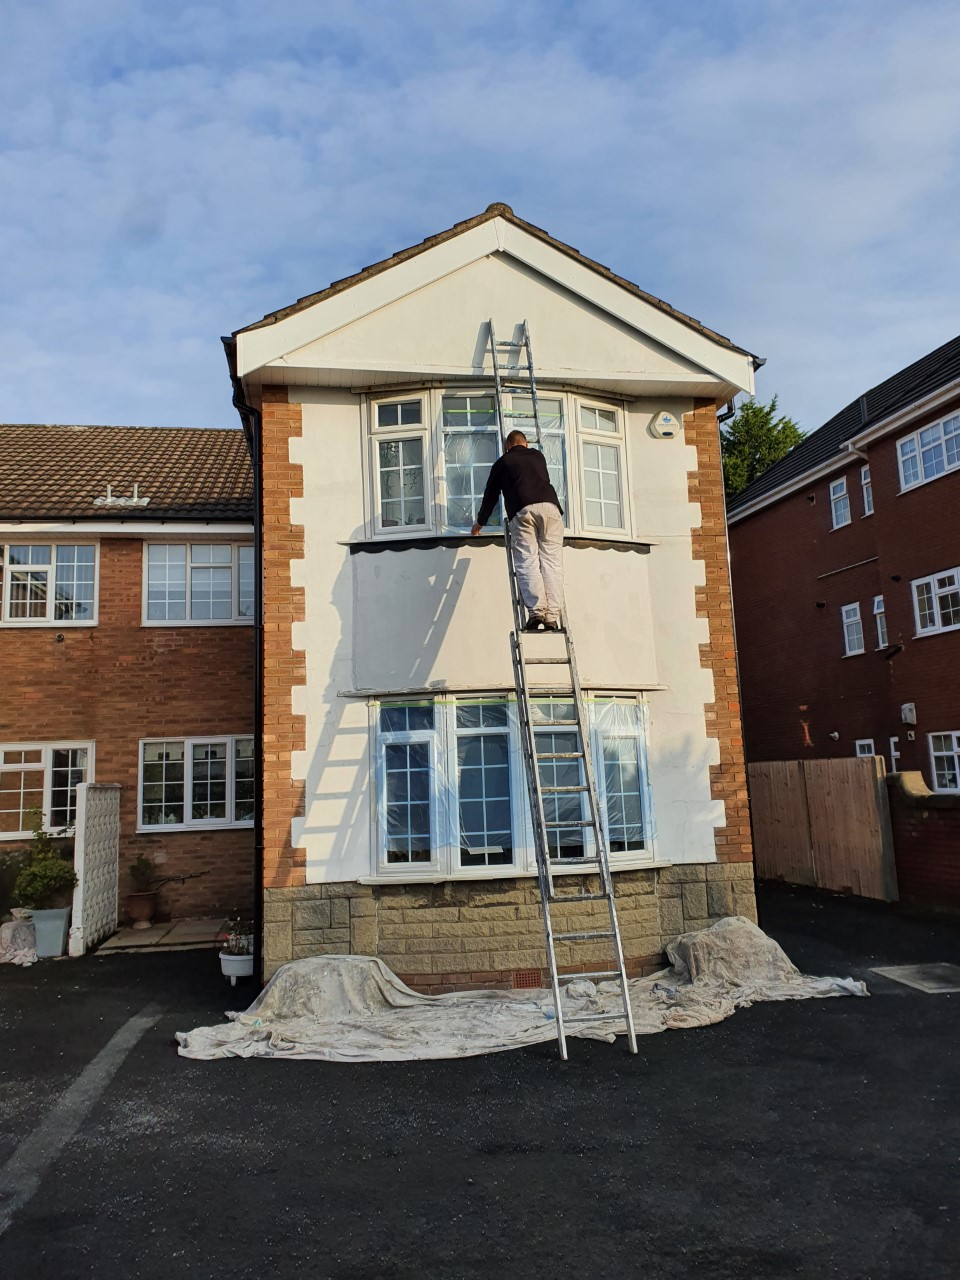 can you carry out exterior painting and decorating in winter?